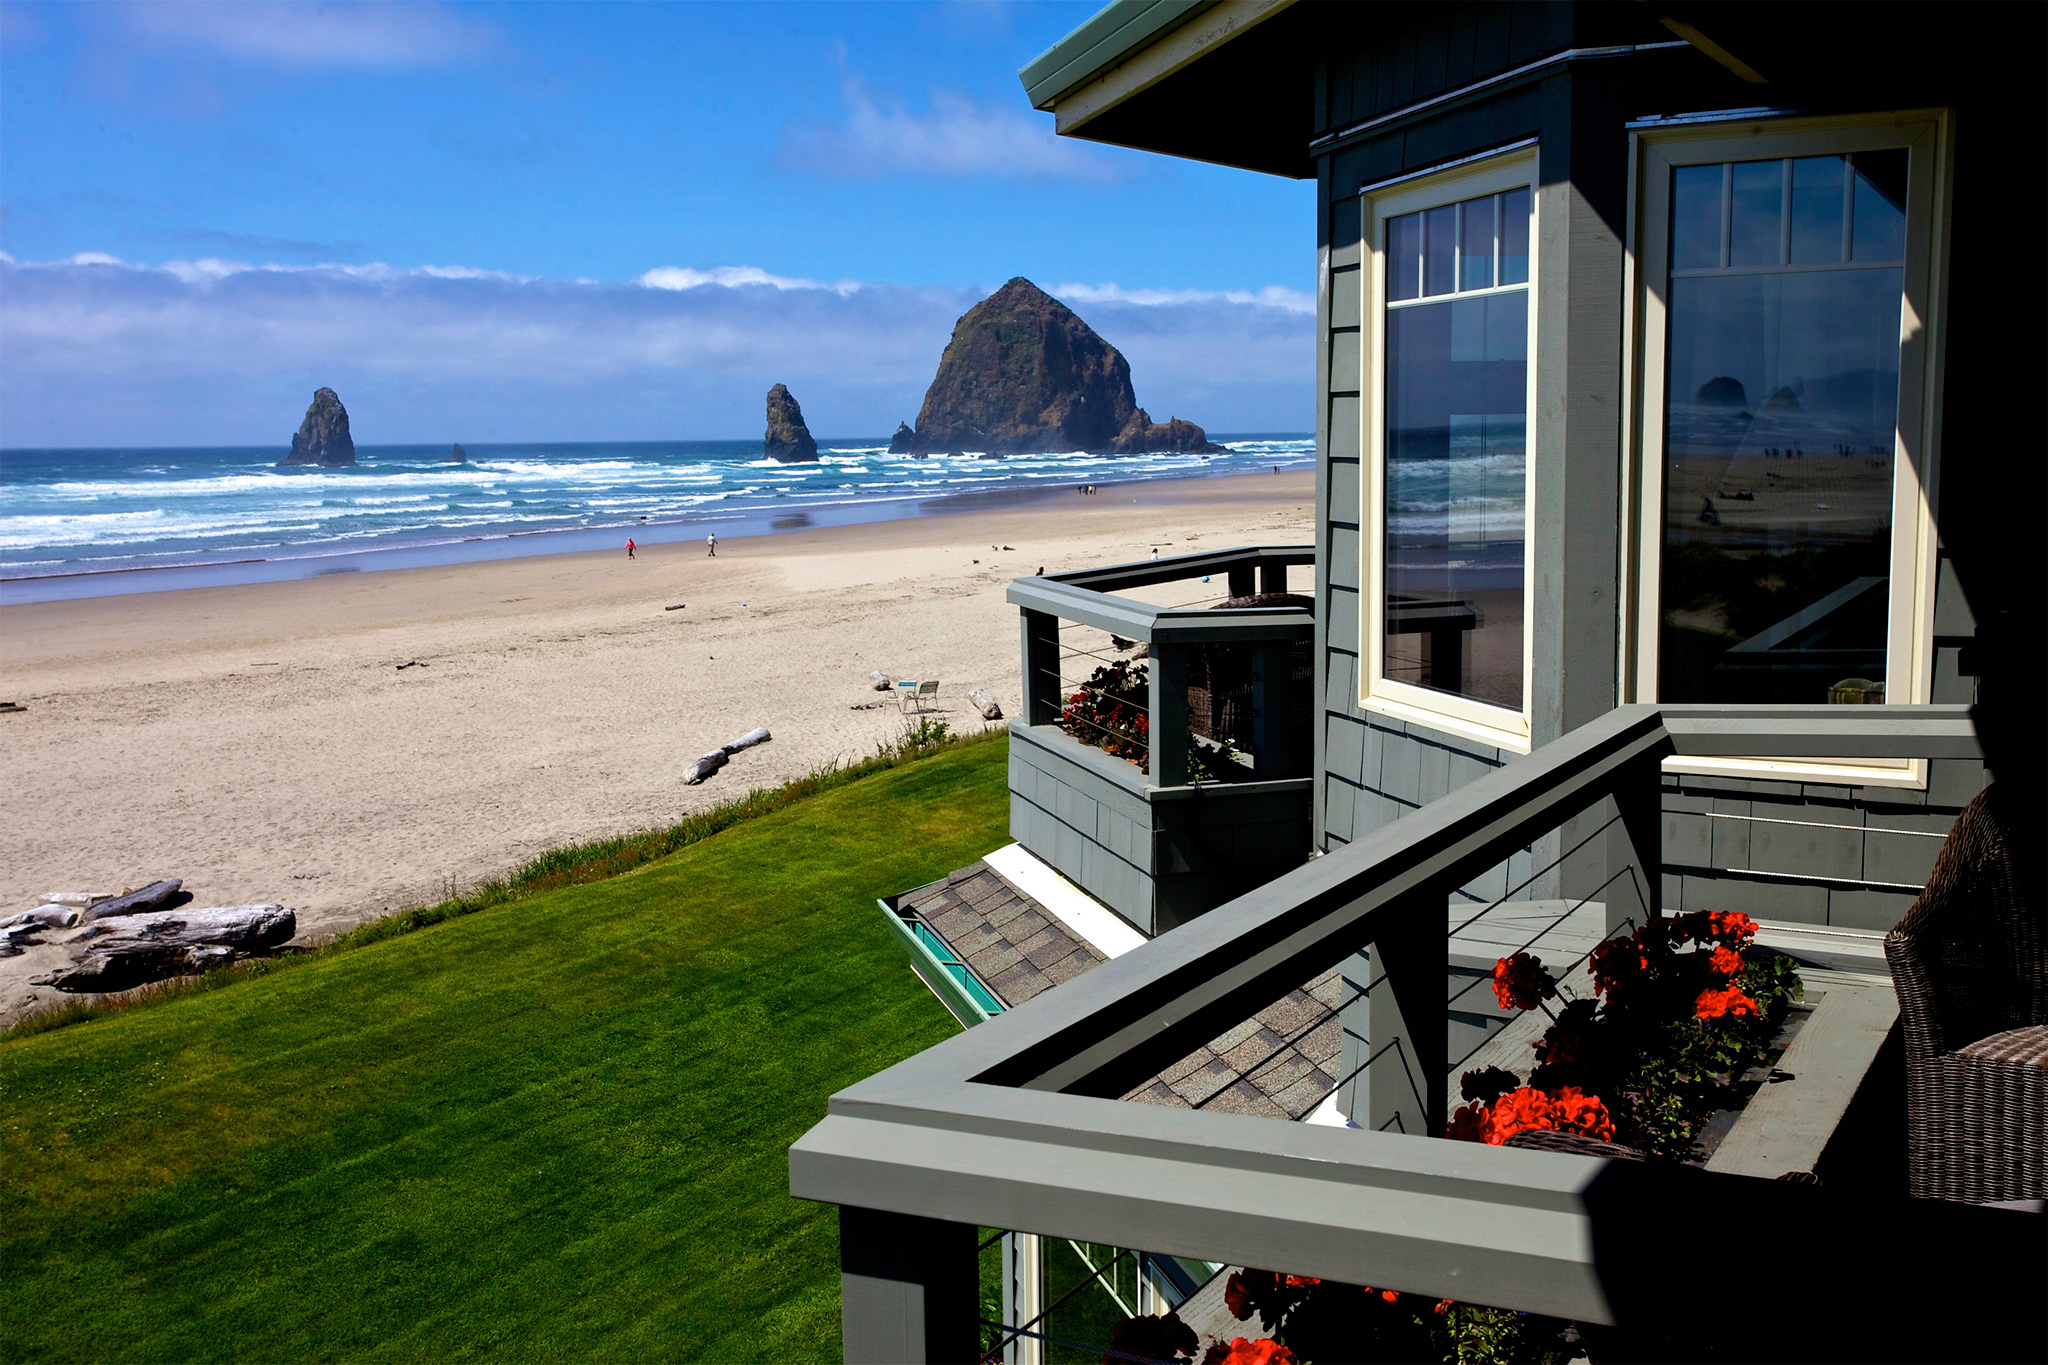 Oceanfront Hotels Cannon Beach Or